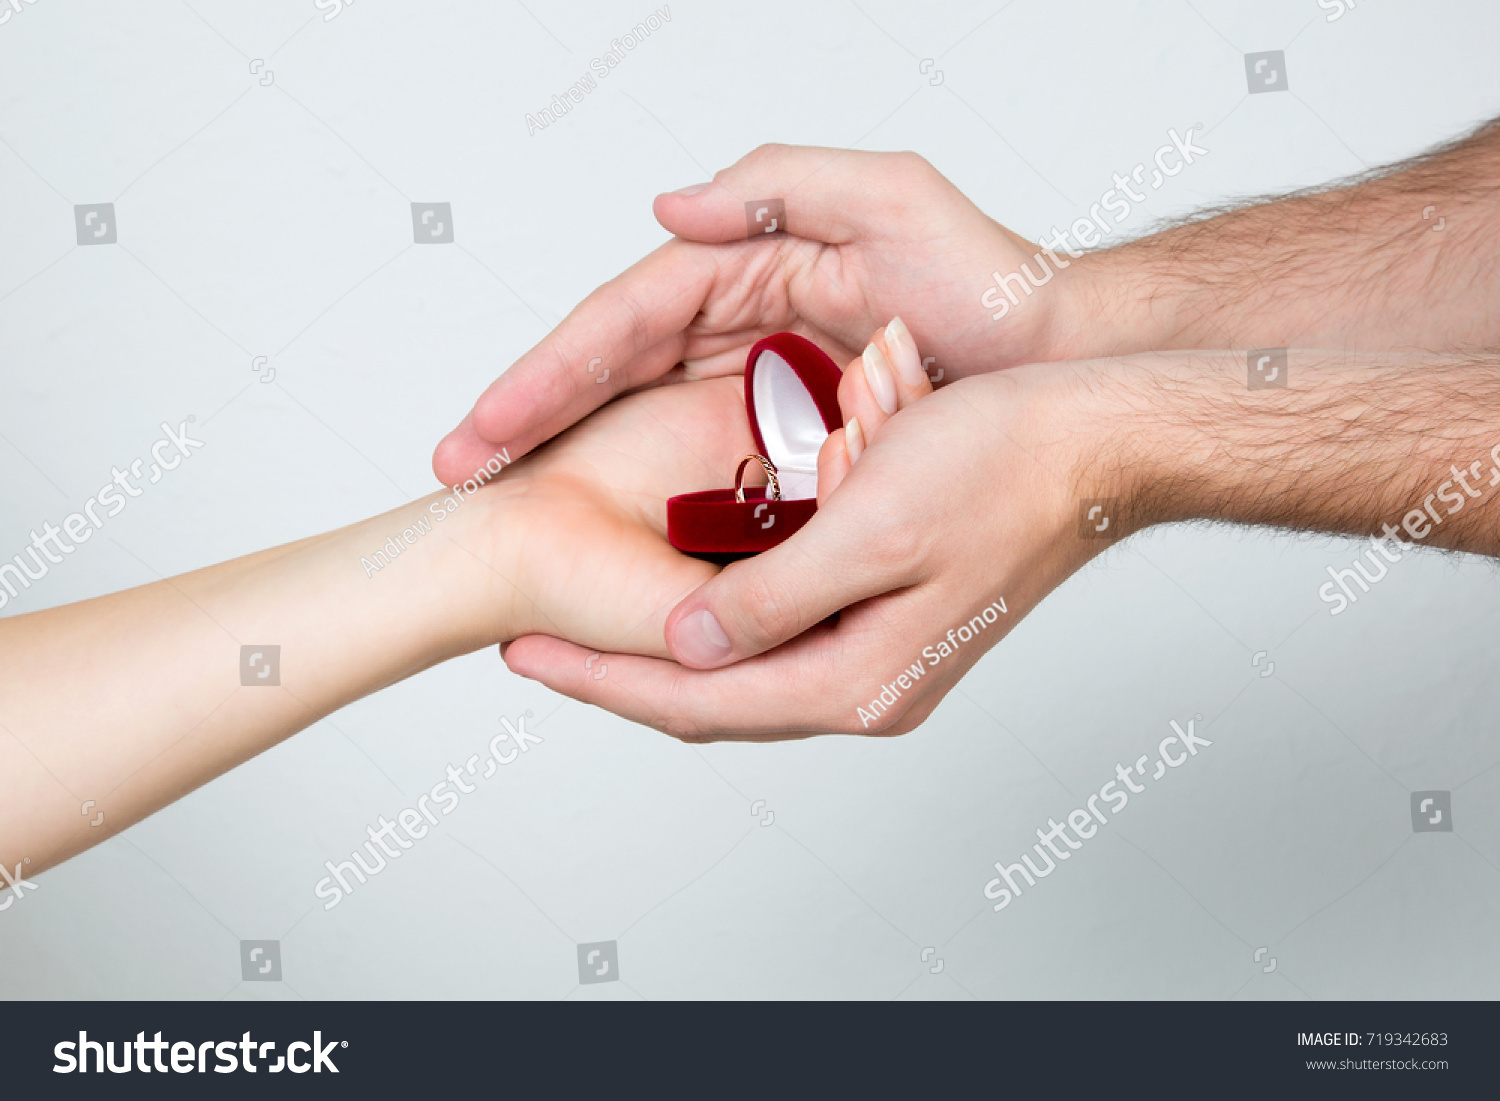 Female Male Hands Holding Ring Box Stock Photo (Edit Now) 719342683 ...